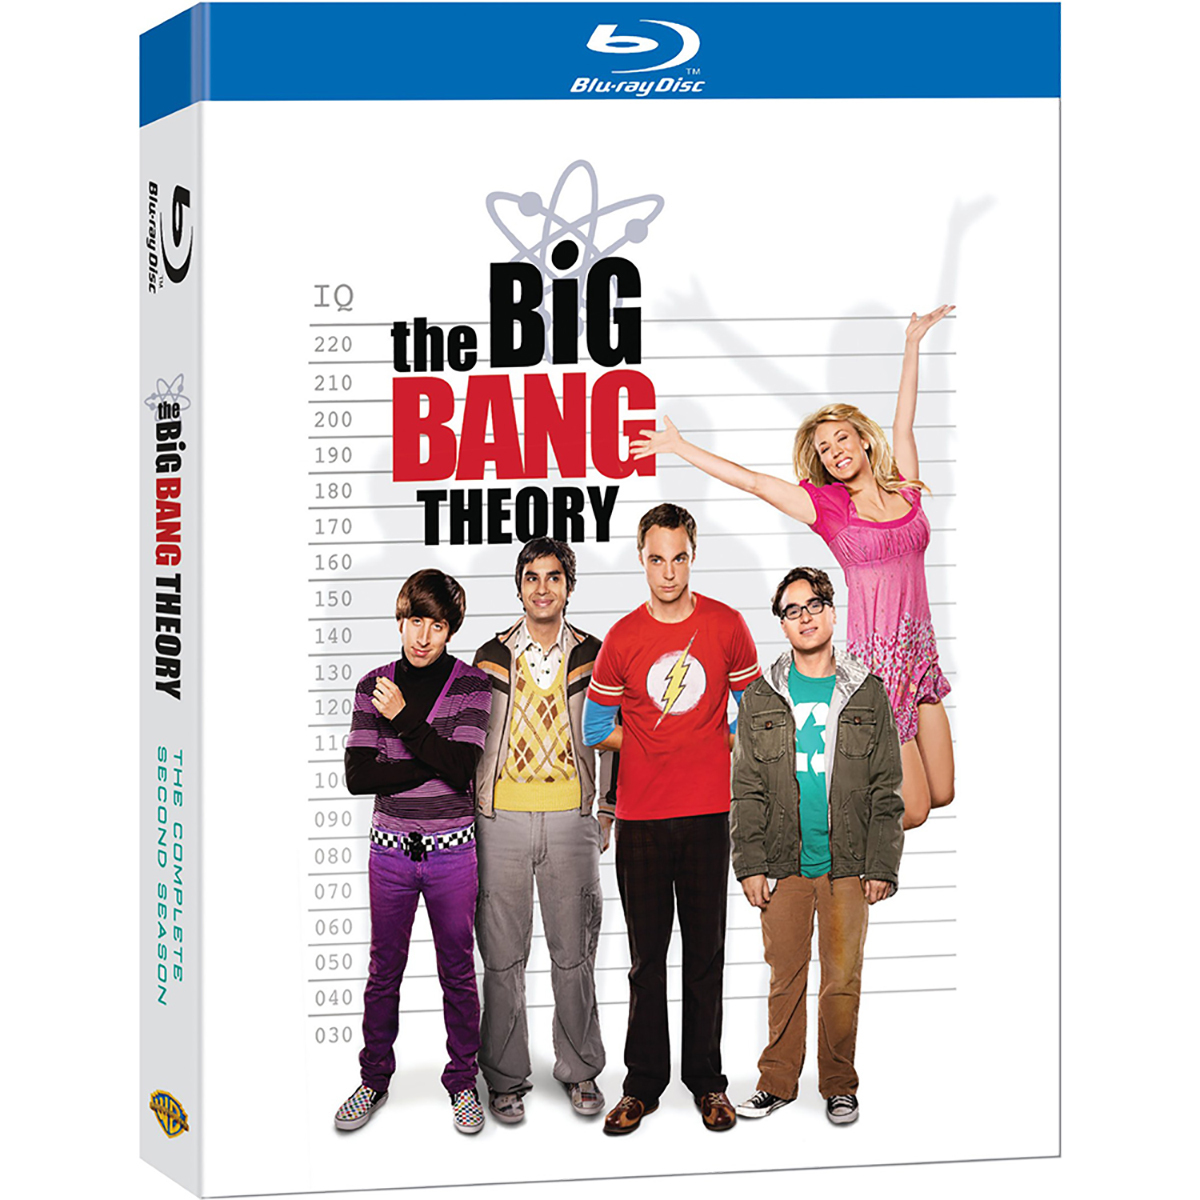 The Big Bang Theory: Season 2 Blu-ray -  DVDs & Videos 2870-478893